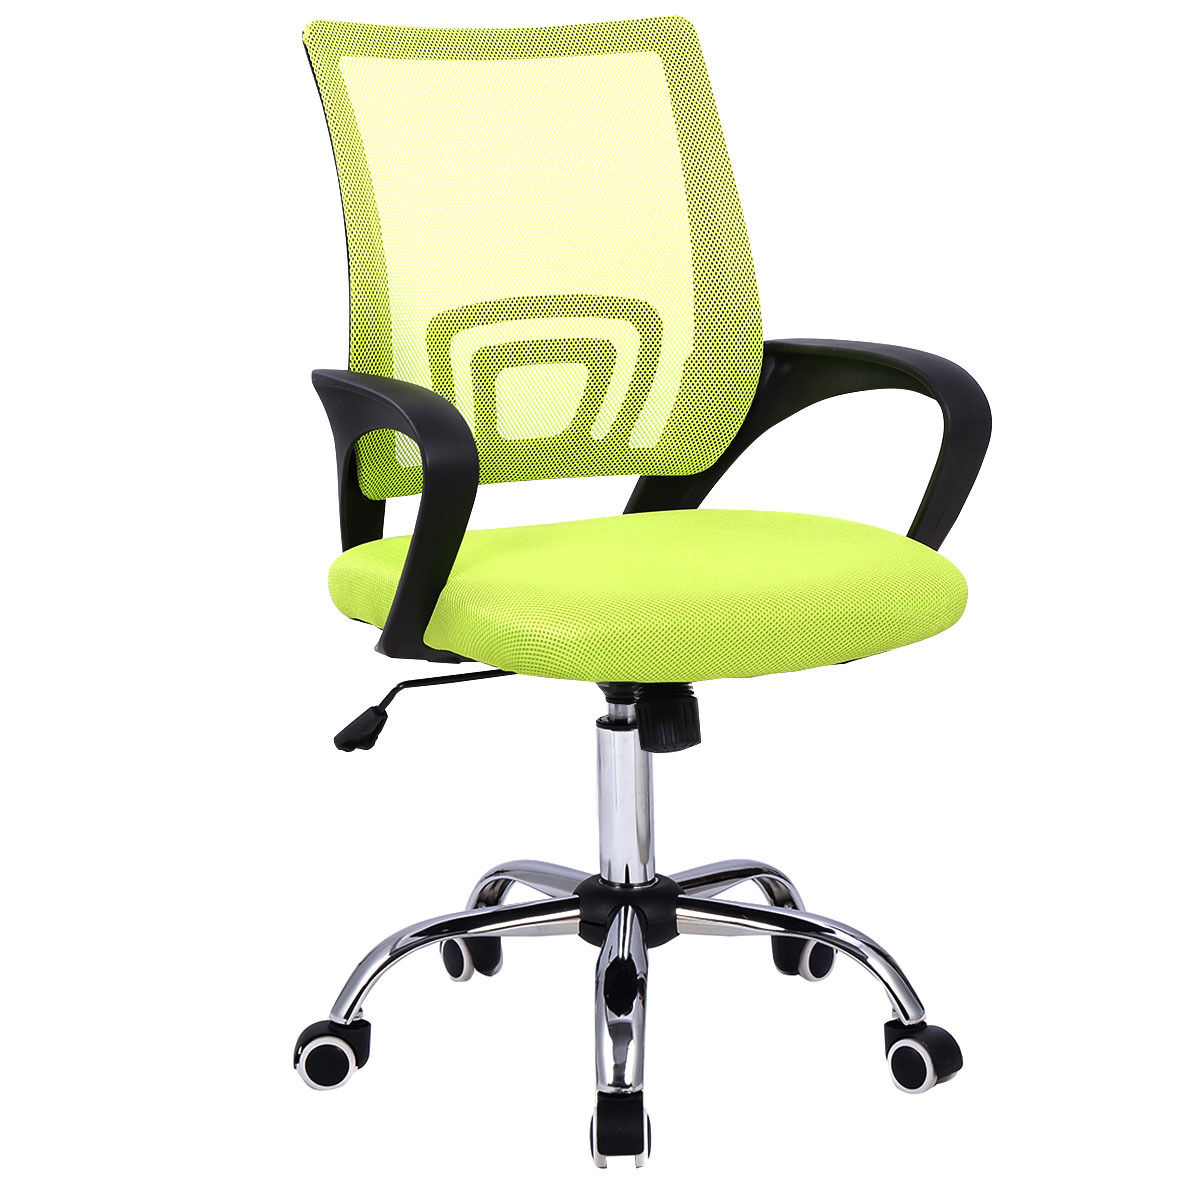 swivel office chair plans wheelchair toilet costway modern mesh mid back computer desk